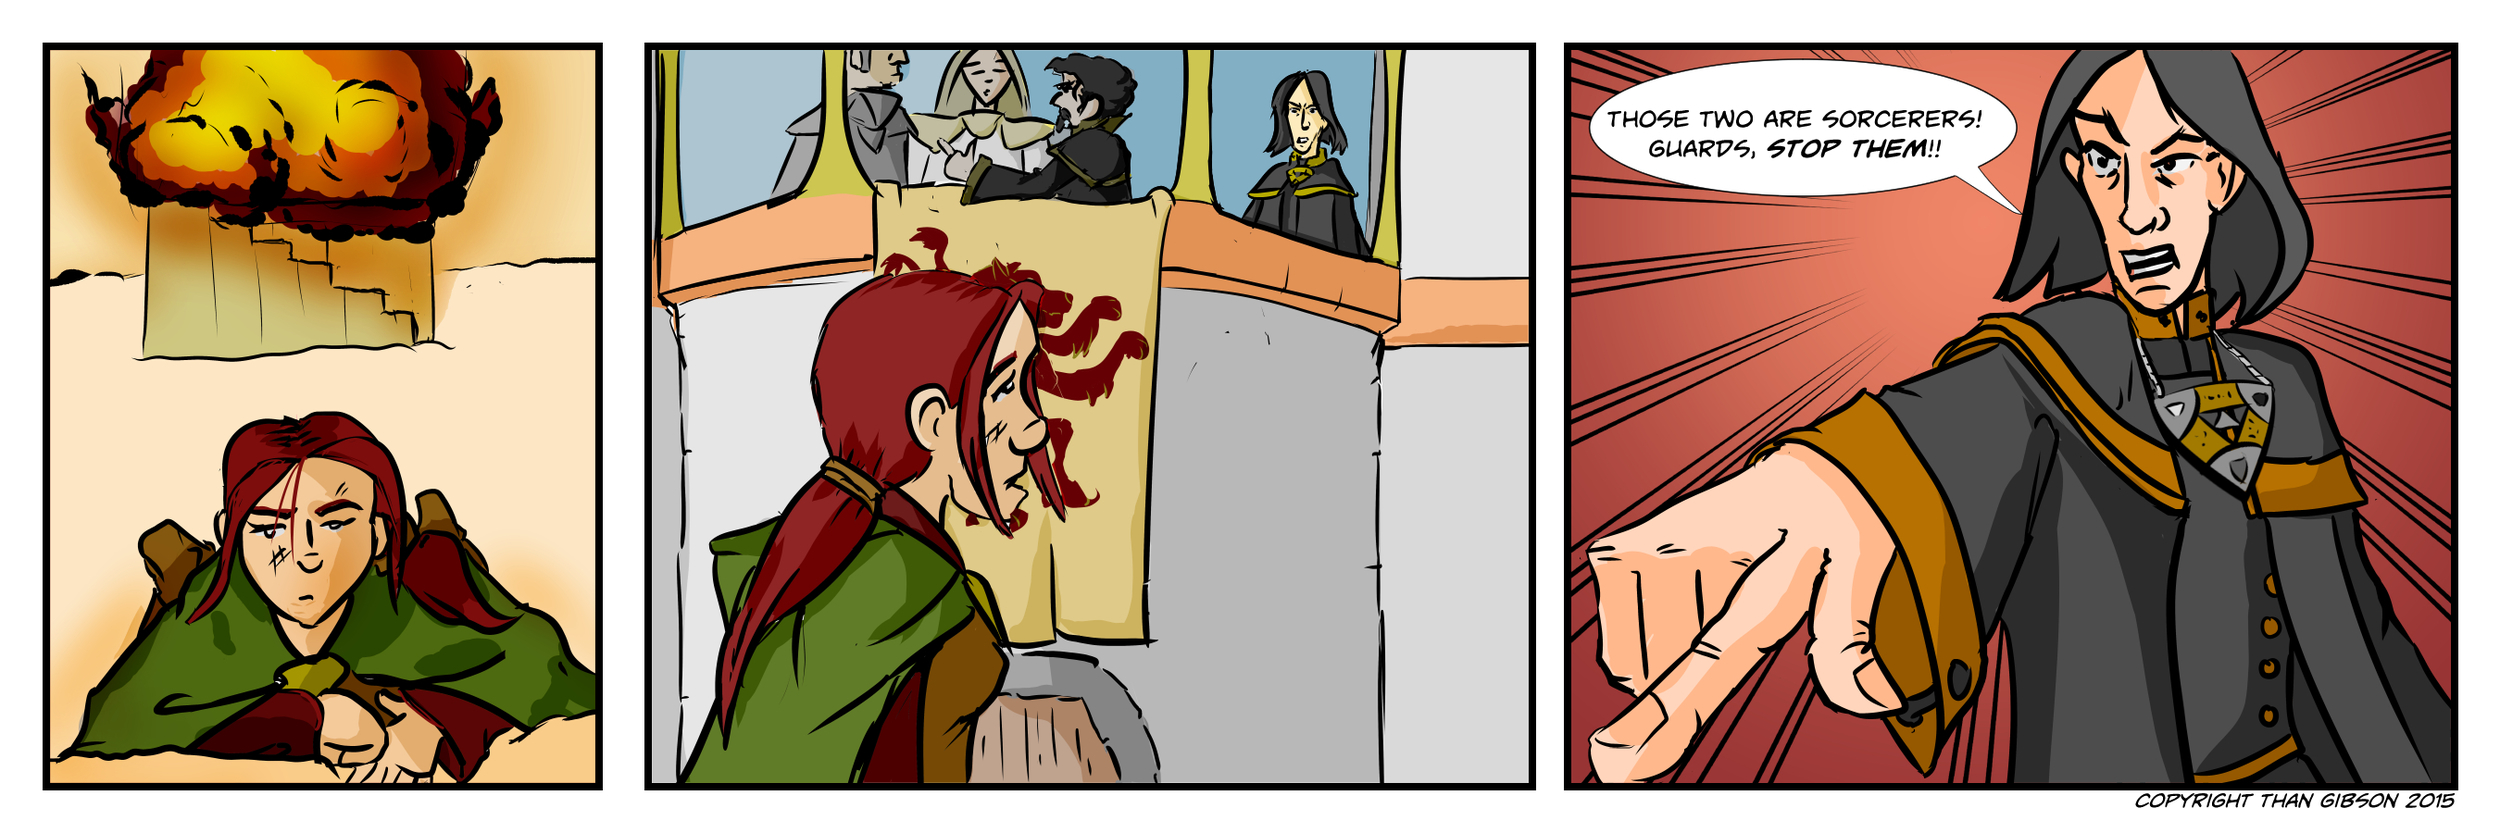 A Chronicle of Thieves - Chapter 2, Strip 25